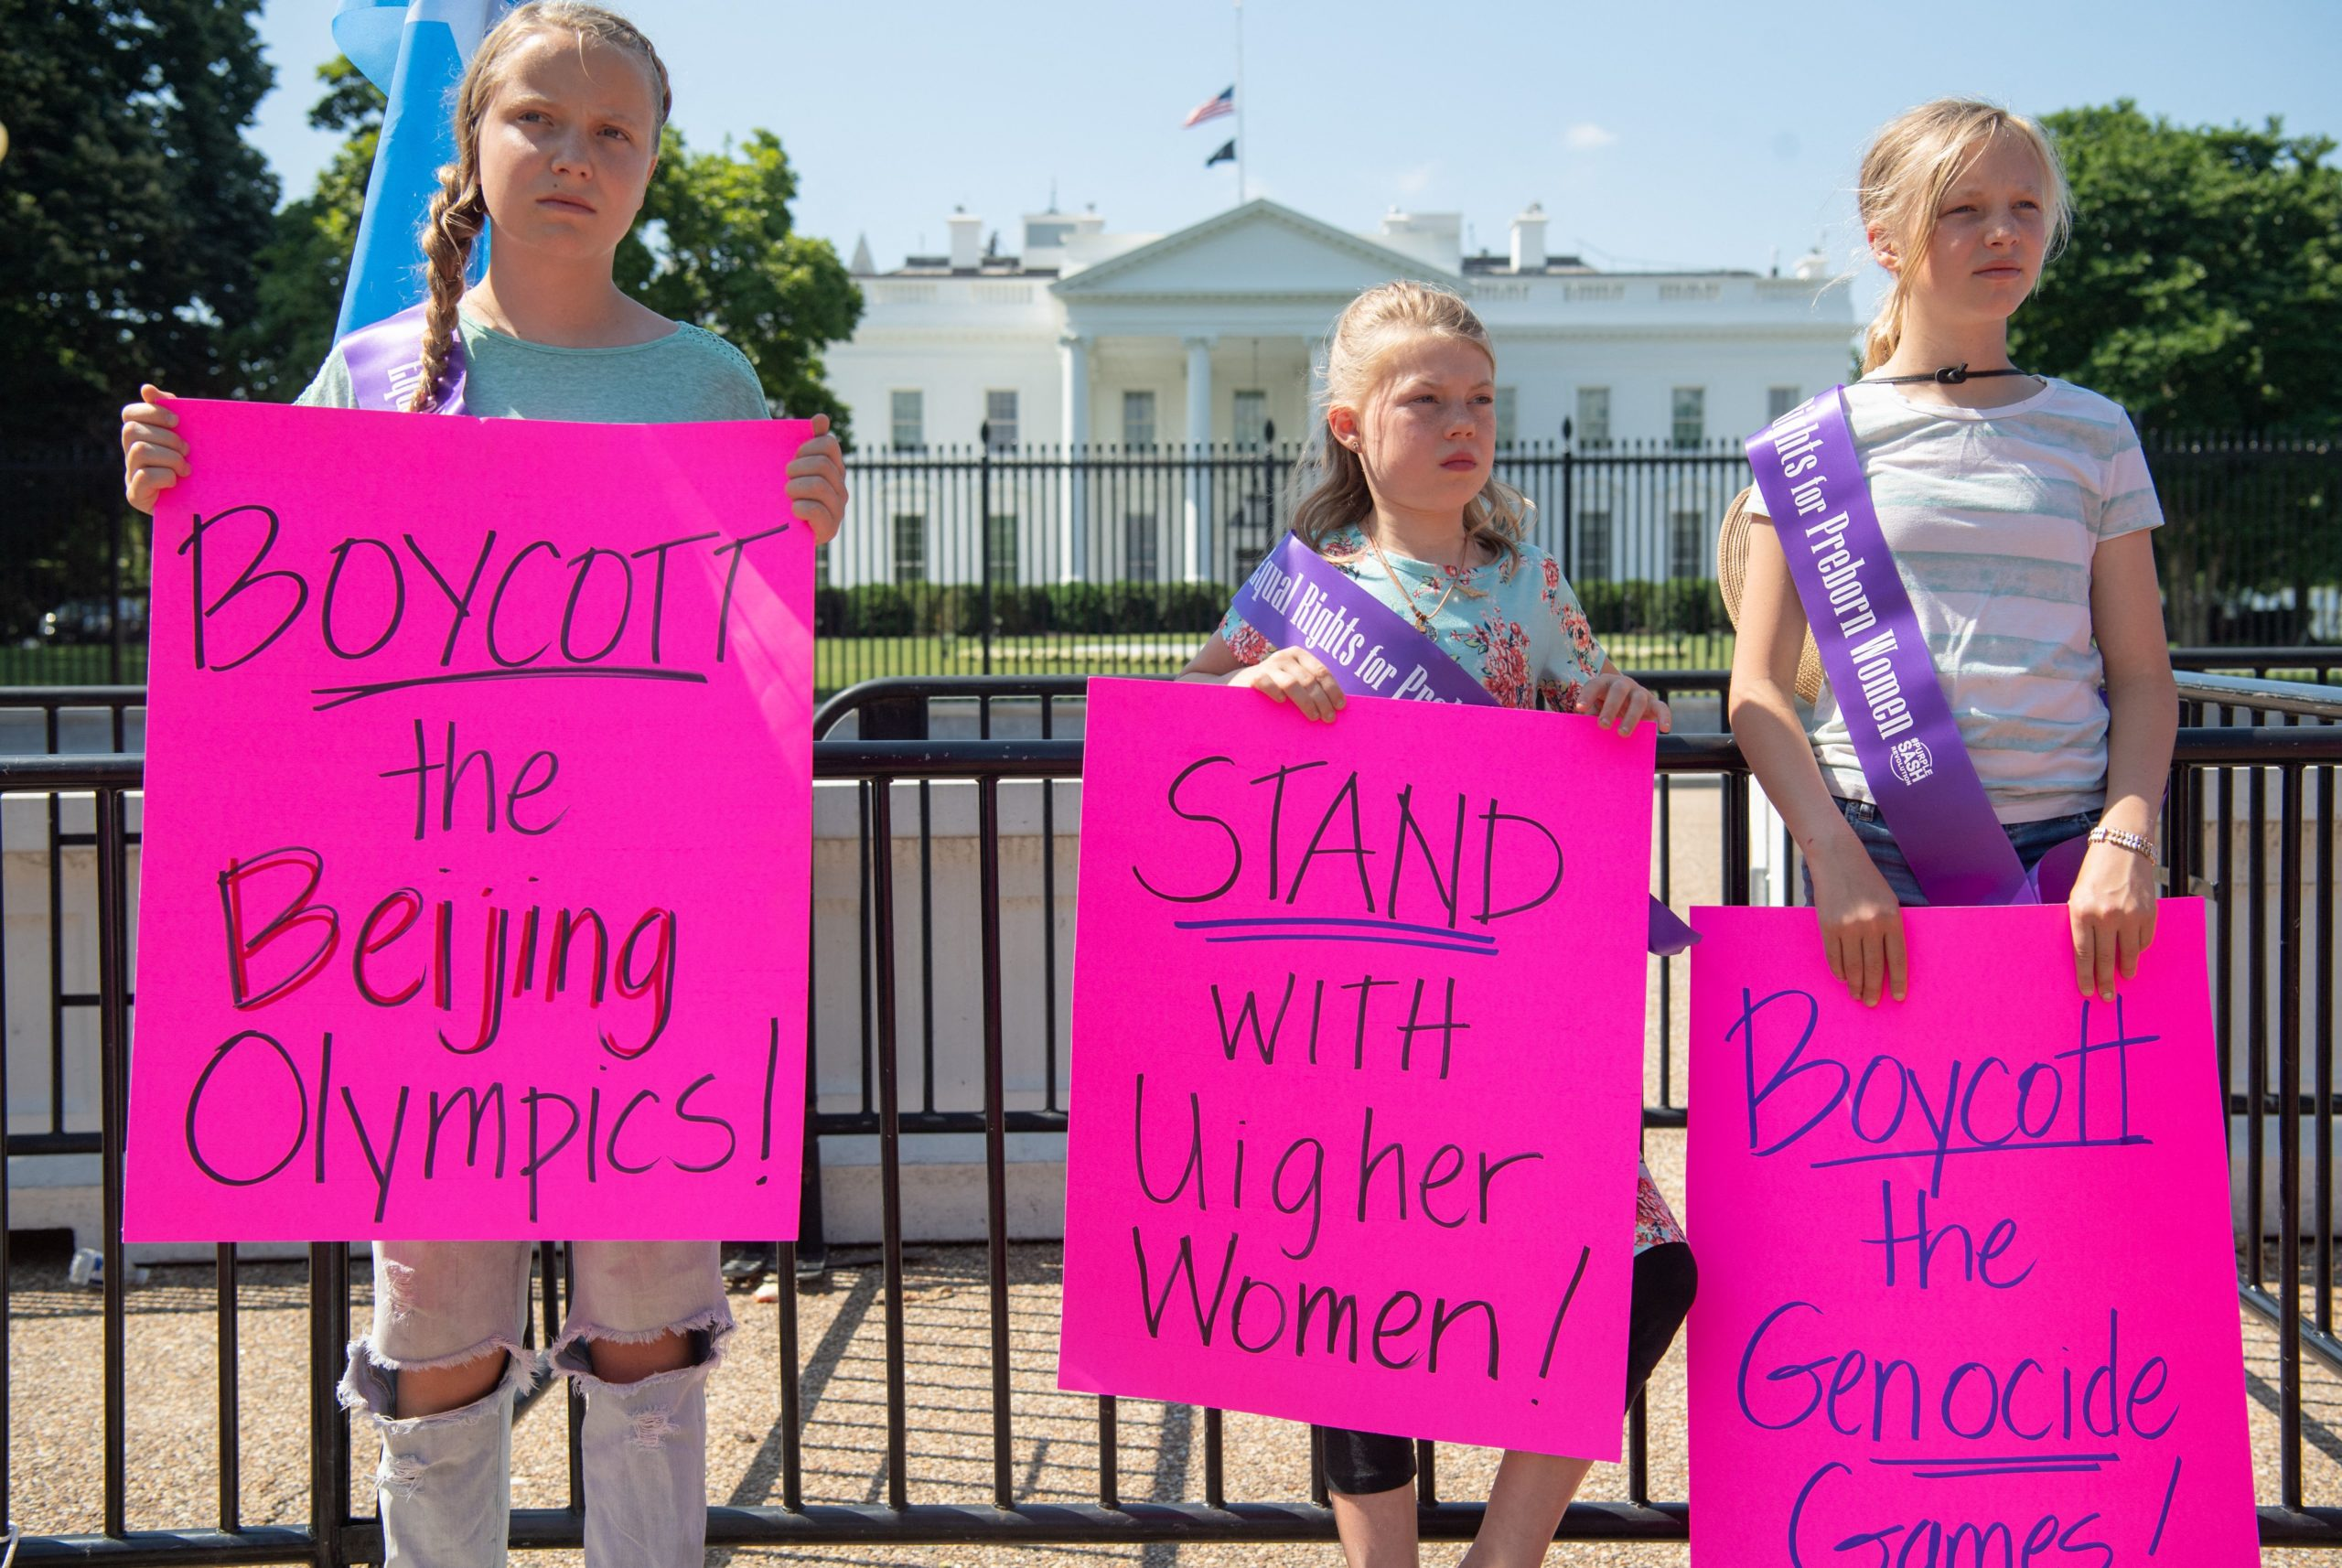 Young demonstrators with the group Stanton Public Policy Center's Purple Sash Revolution hold a rally in support of Uighur women and call to boycott the 2022 Olympic Games in Beijing during a protest at Lafayette Park outside the White House in Washington, DC, May 27, 2021. (Photo by SAUL LOEB/AFP via Getty Images)